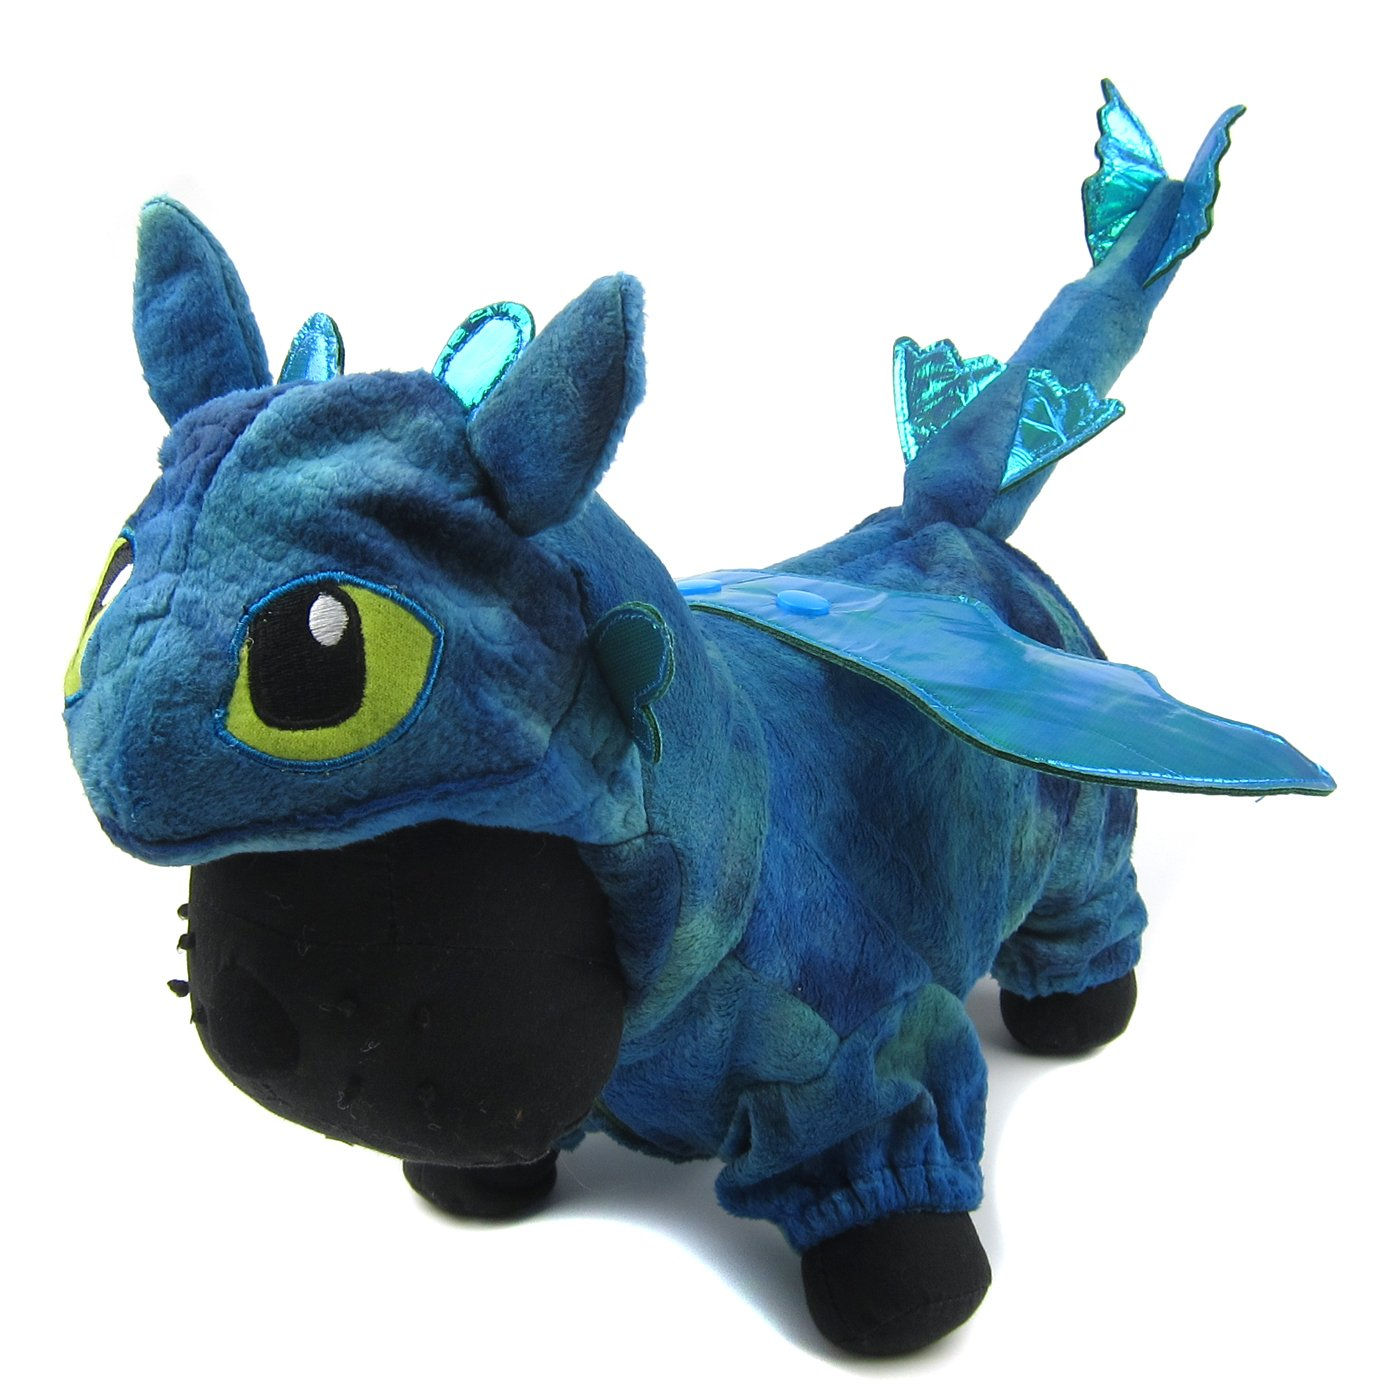 bluee Small bluee Small Alfie Pet Night Fury Dragon Costume color  bluee, Size  Small